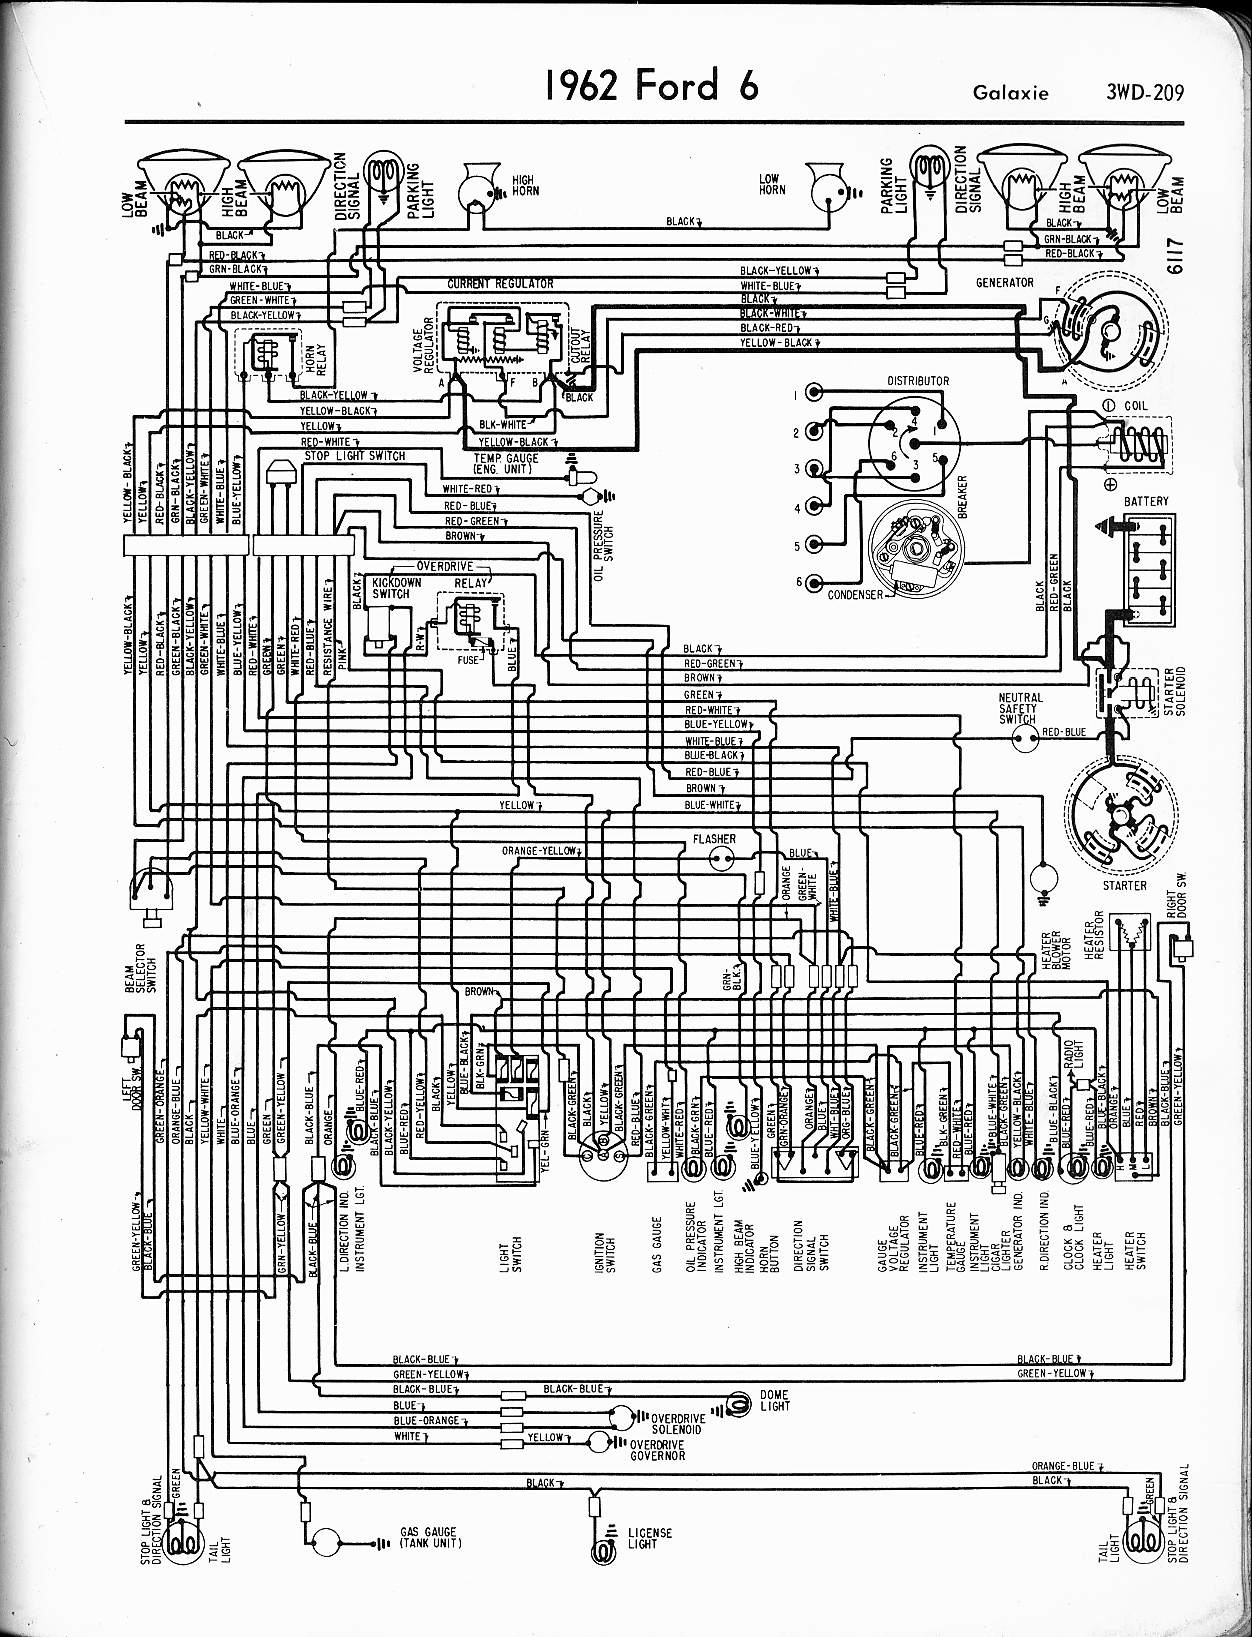 1962 ford wiring diagram schema diagram preview 65 Fairlane 2 Door Wagon